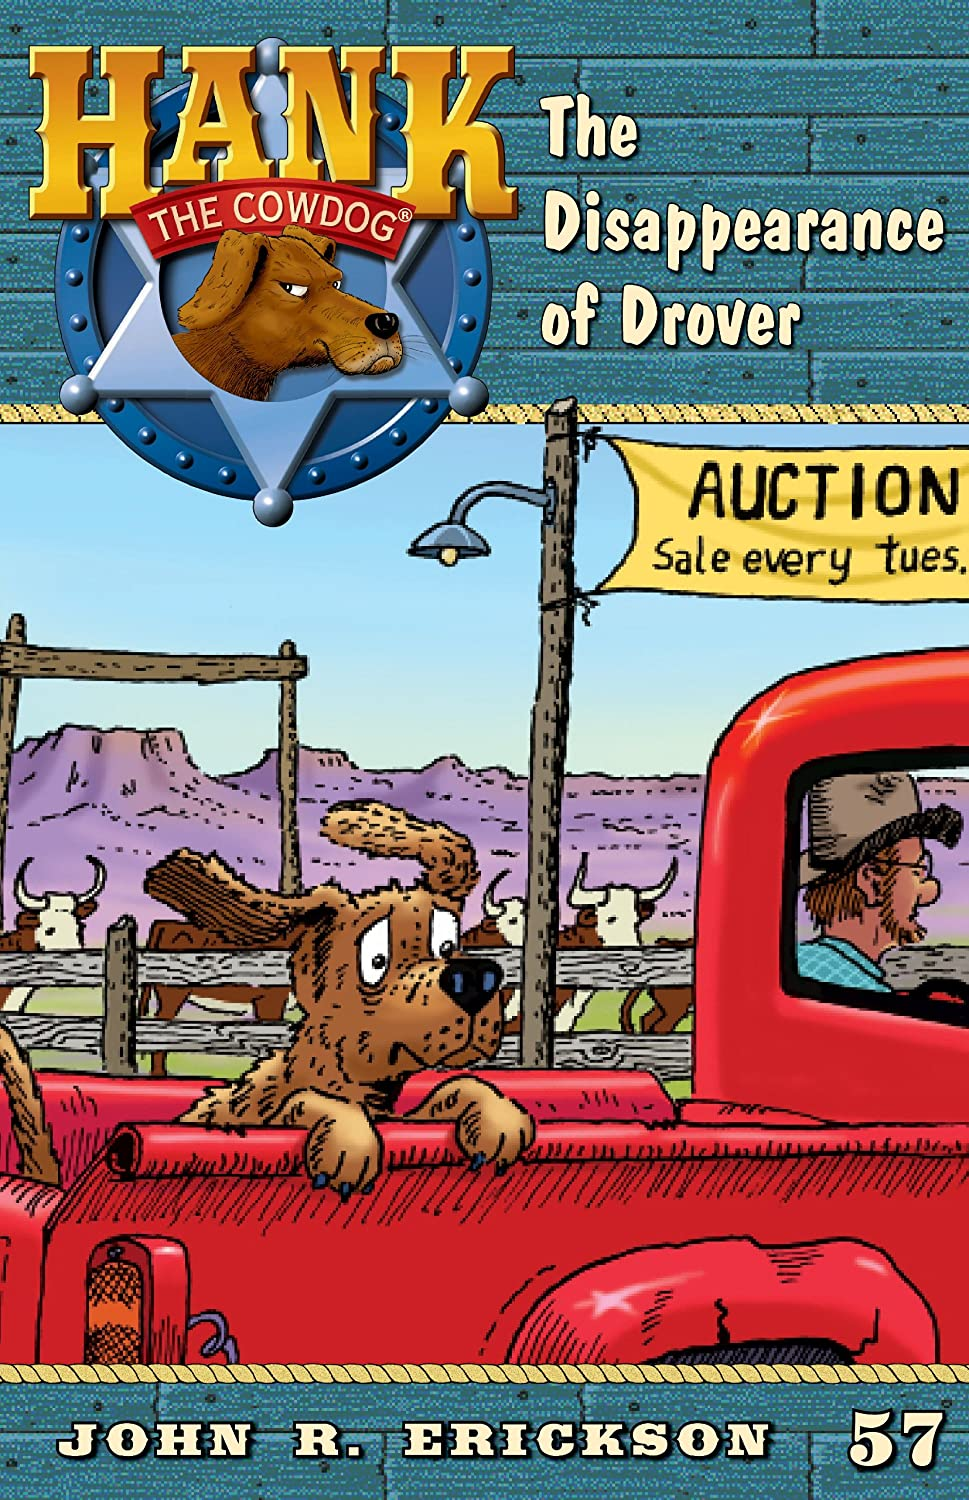 of Drover (Hank the Cowdog